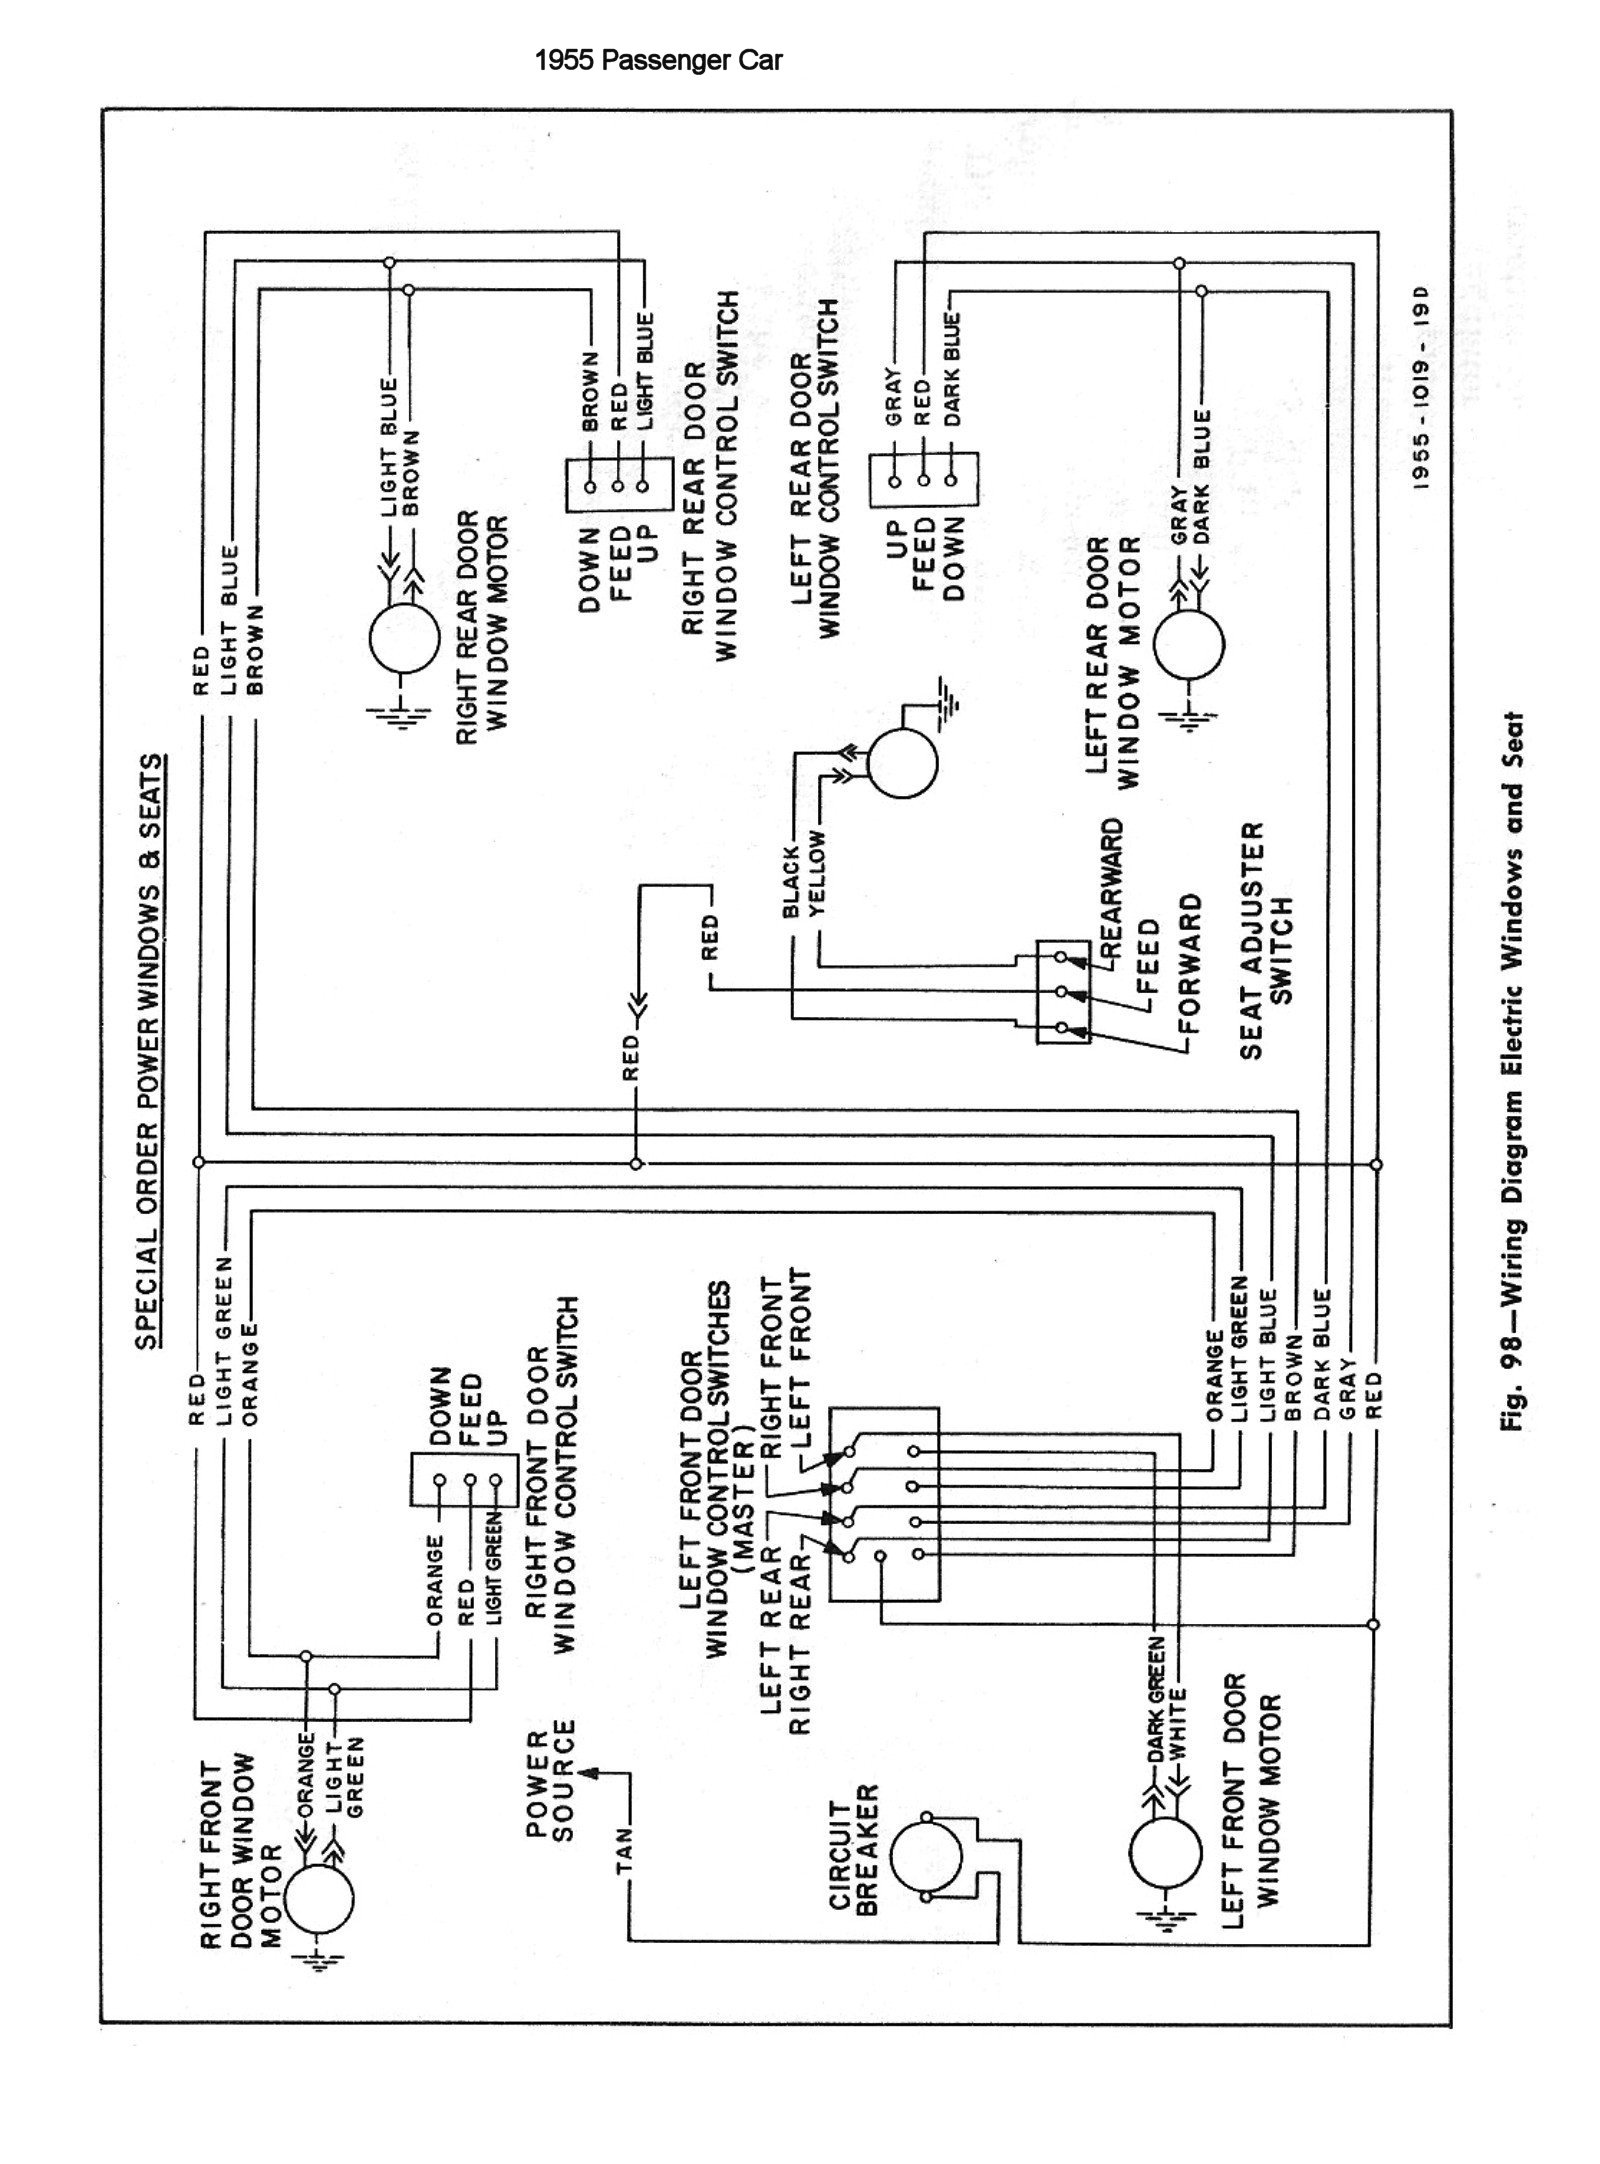 55csm0146 chevy wiring diagrams 1986 chevy truck wiper motor wiring diagram at panicattacktreatment.co